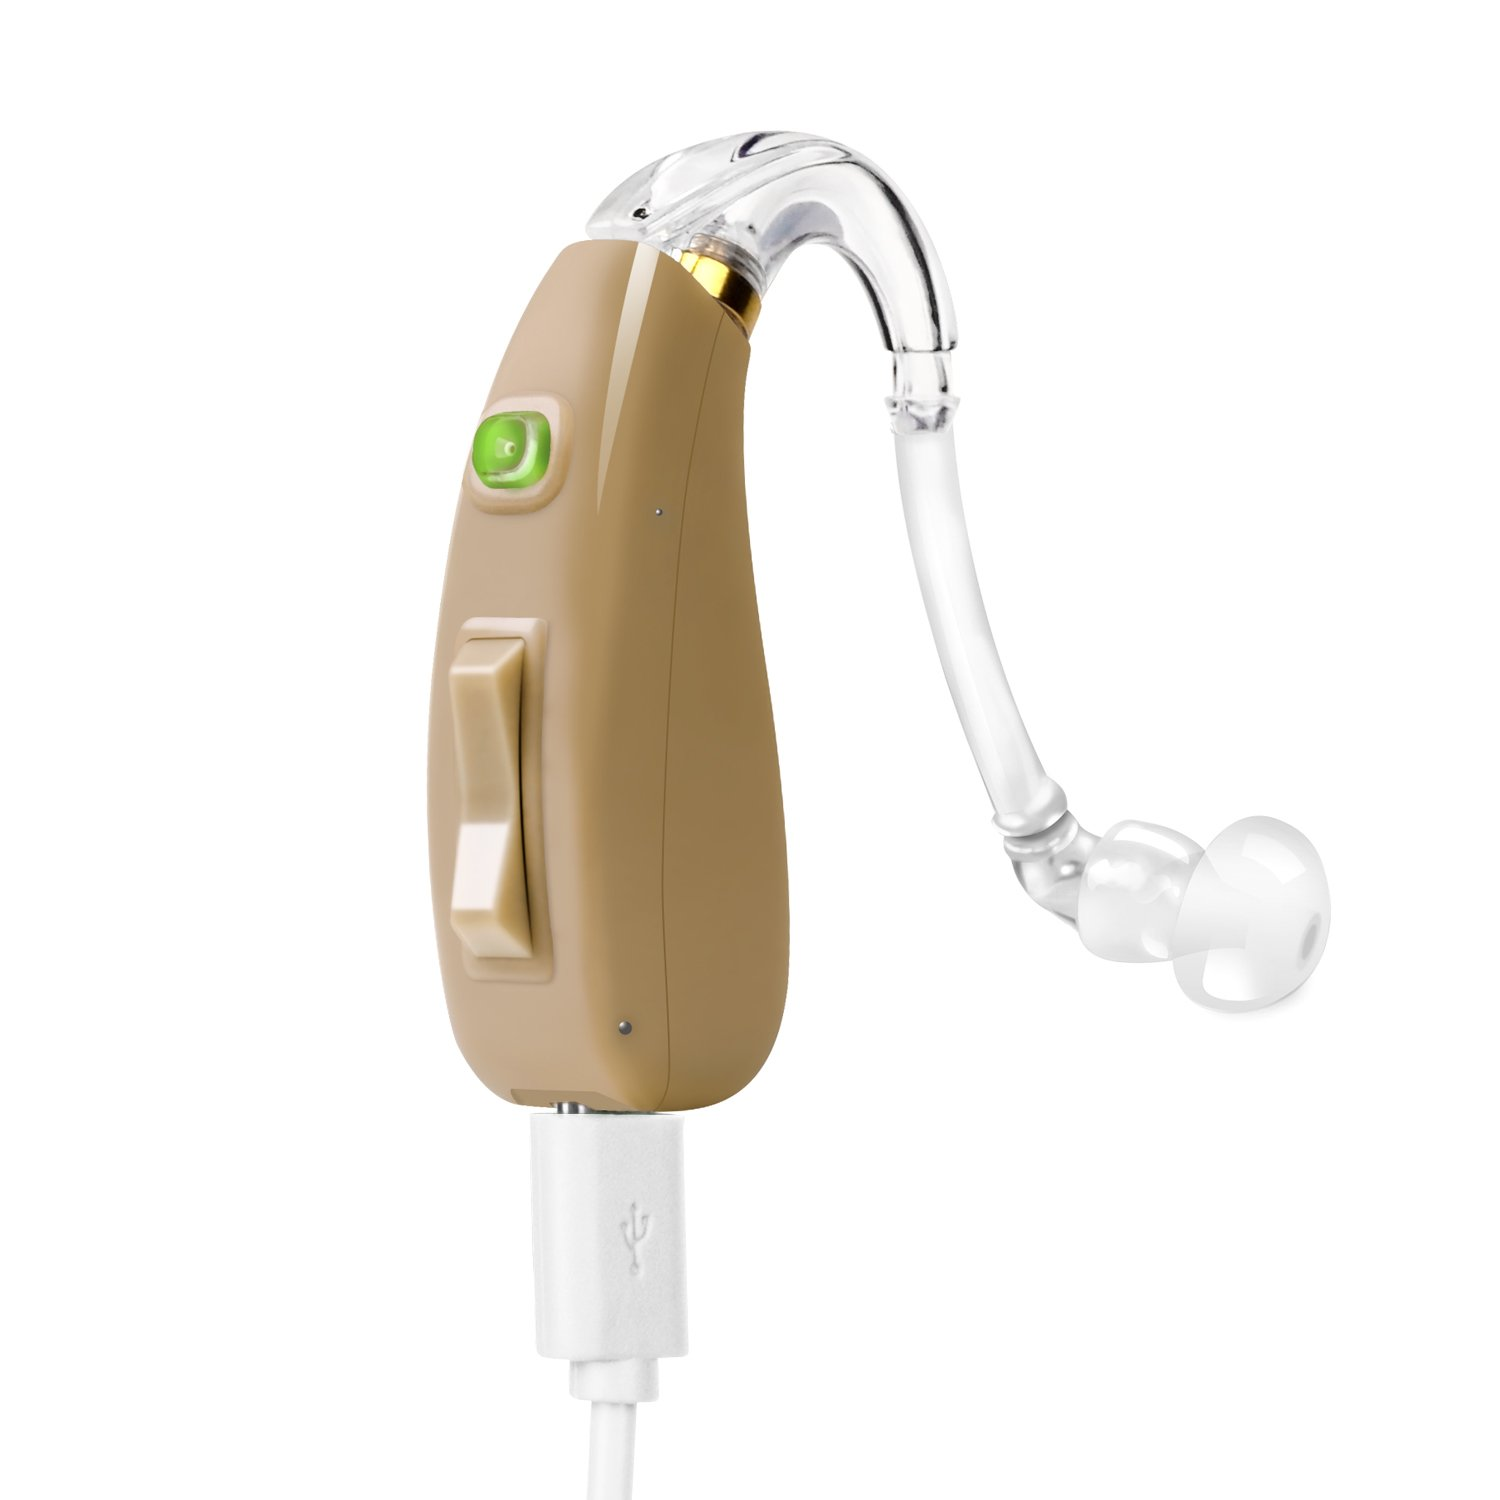 Banglijian Hearing Amplifier Rechargeable Ziv-201 ''FDA Approved'' High Quality Digital BTE Small Size